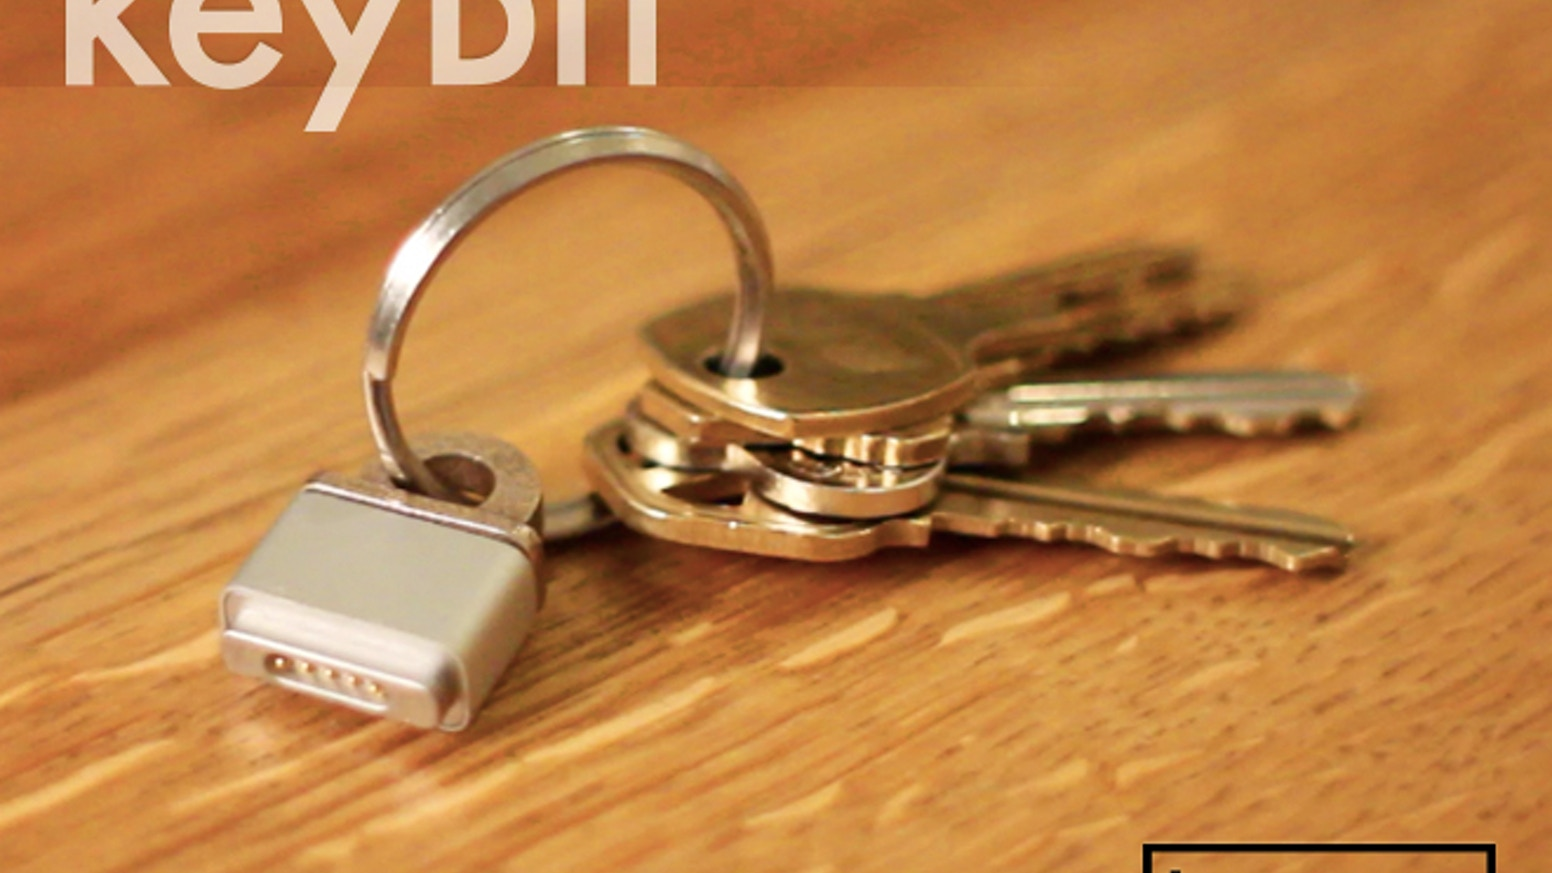 Never run out of MacBook power on the go with the KeyBit: the first MagSafe Adapter key ring.